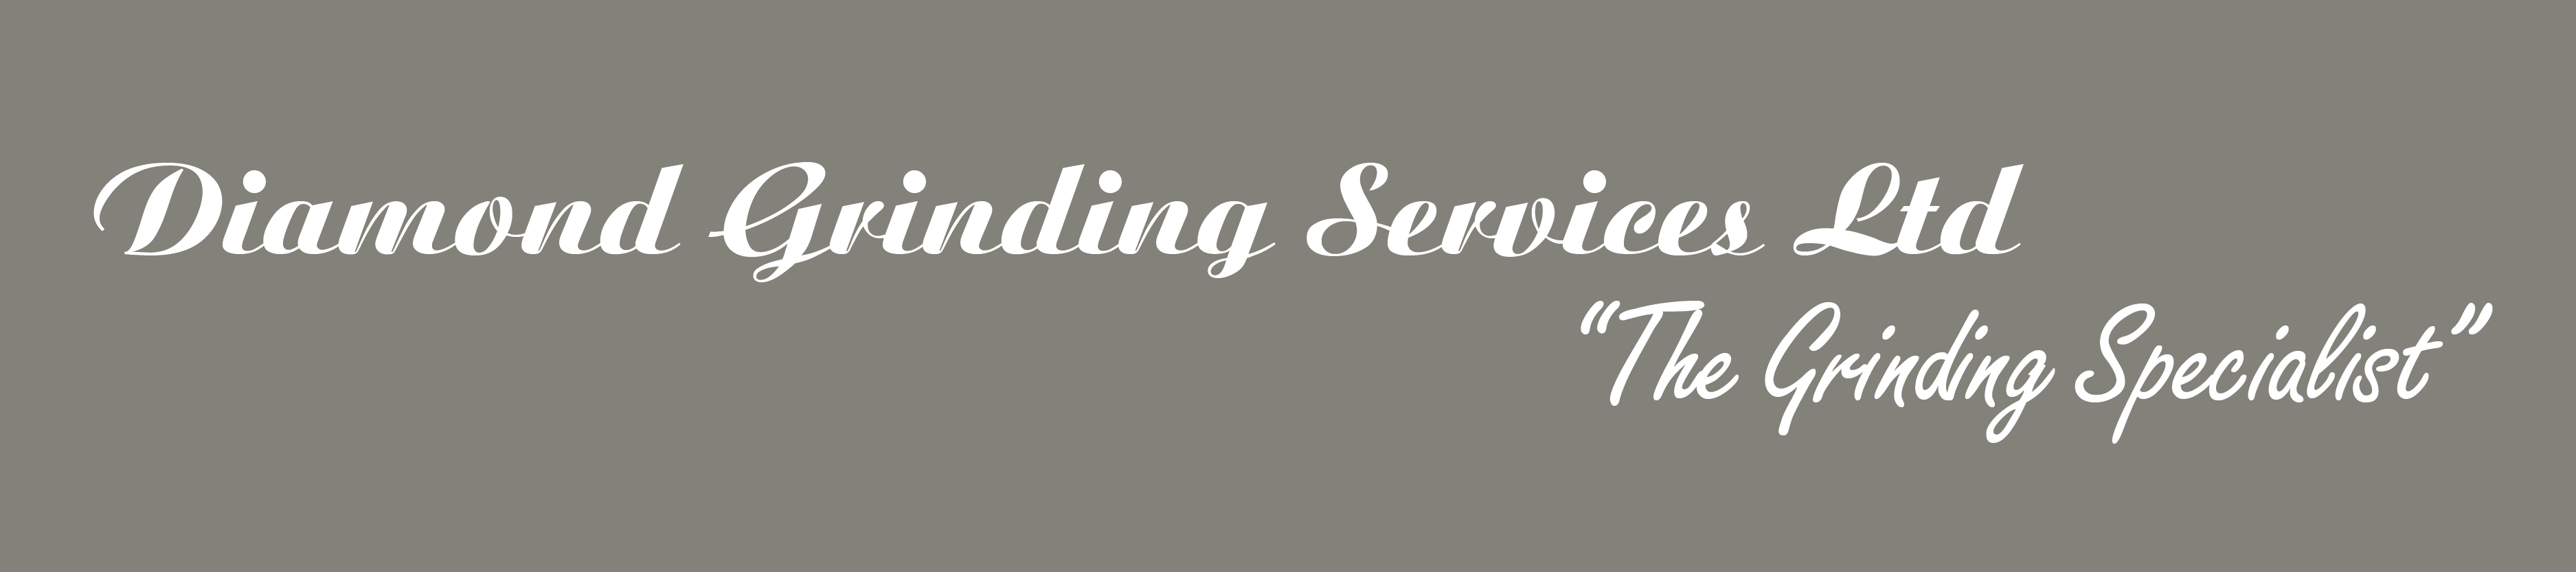 Diamond Grinding Services